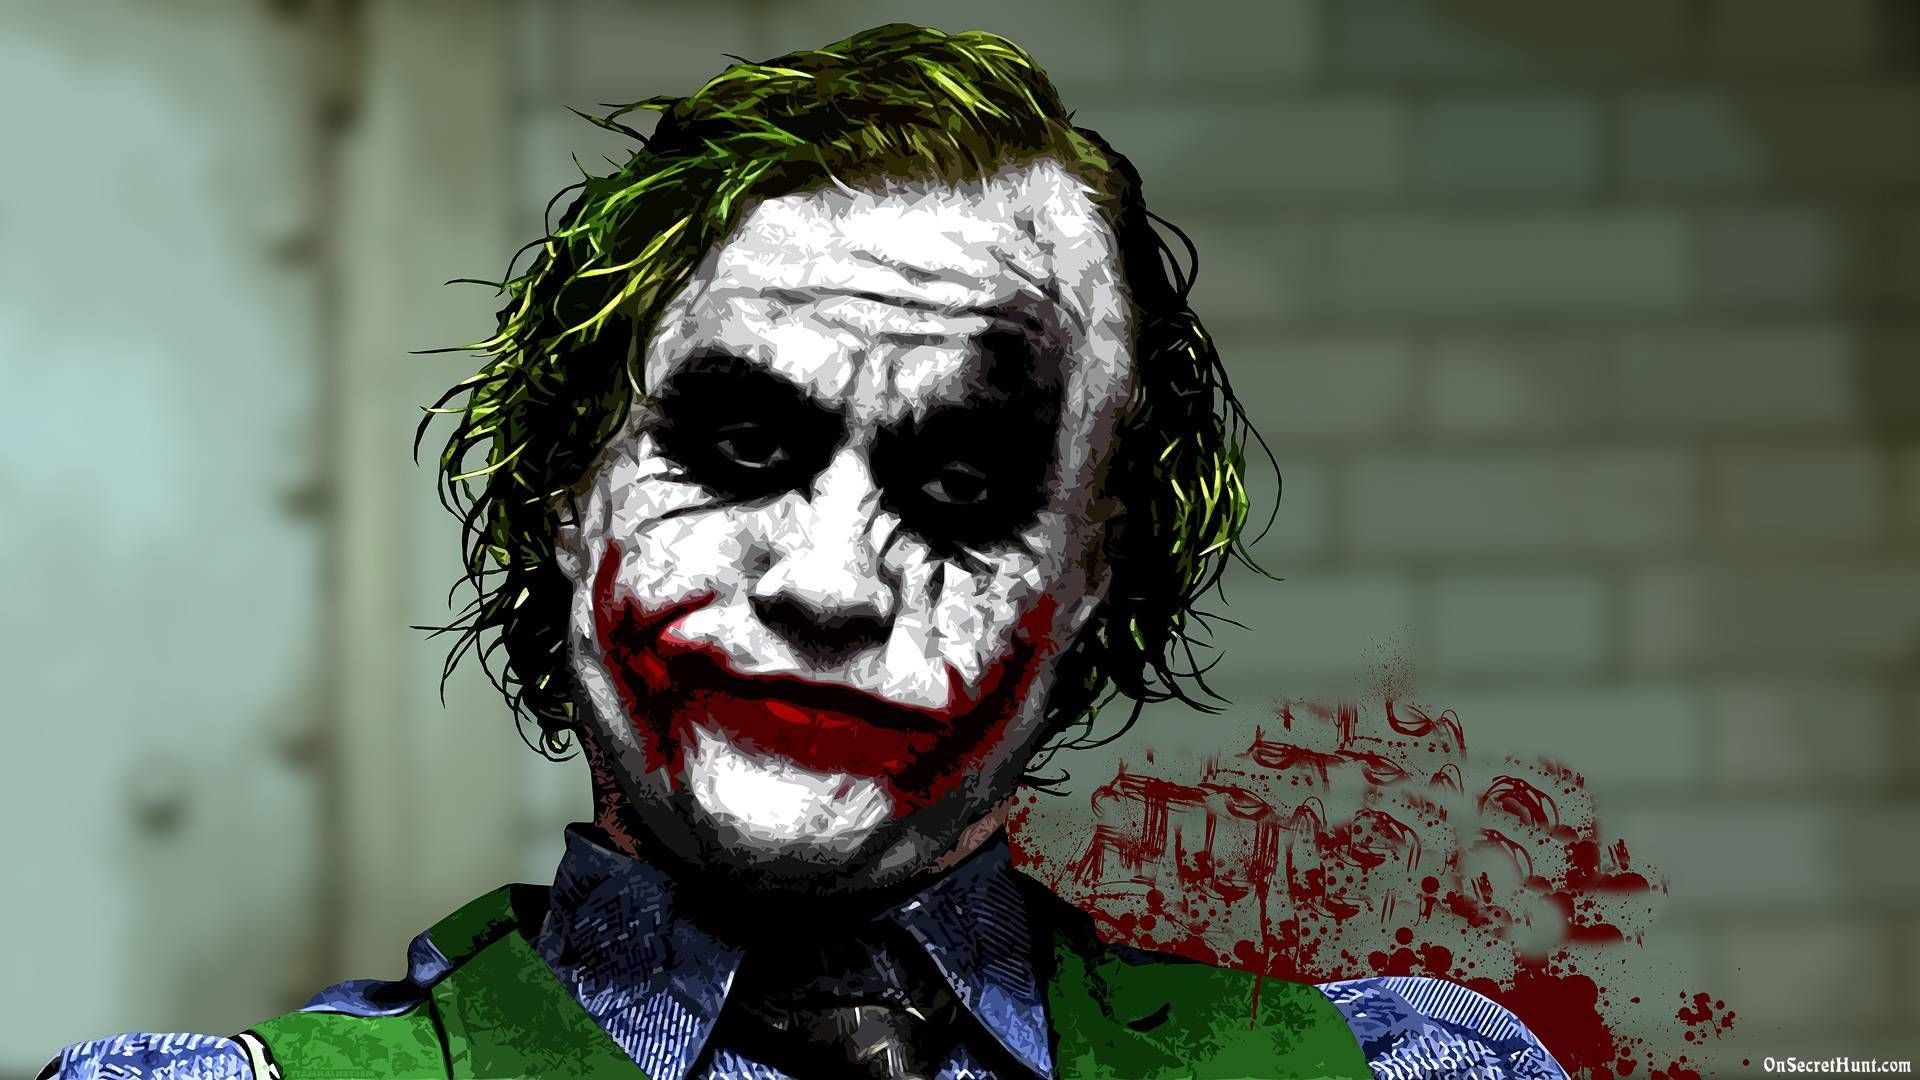 Res: 1920x1080, Download Batman Joker Wallpaper Hd Wallpapers PX .